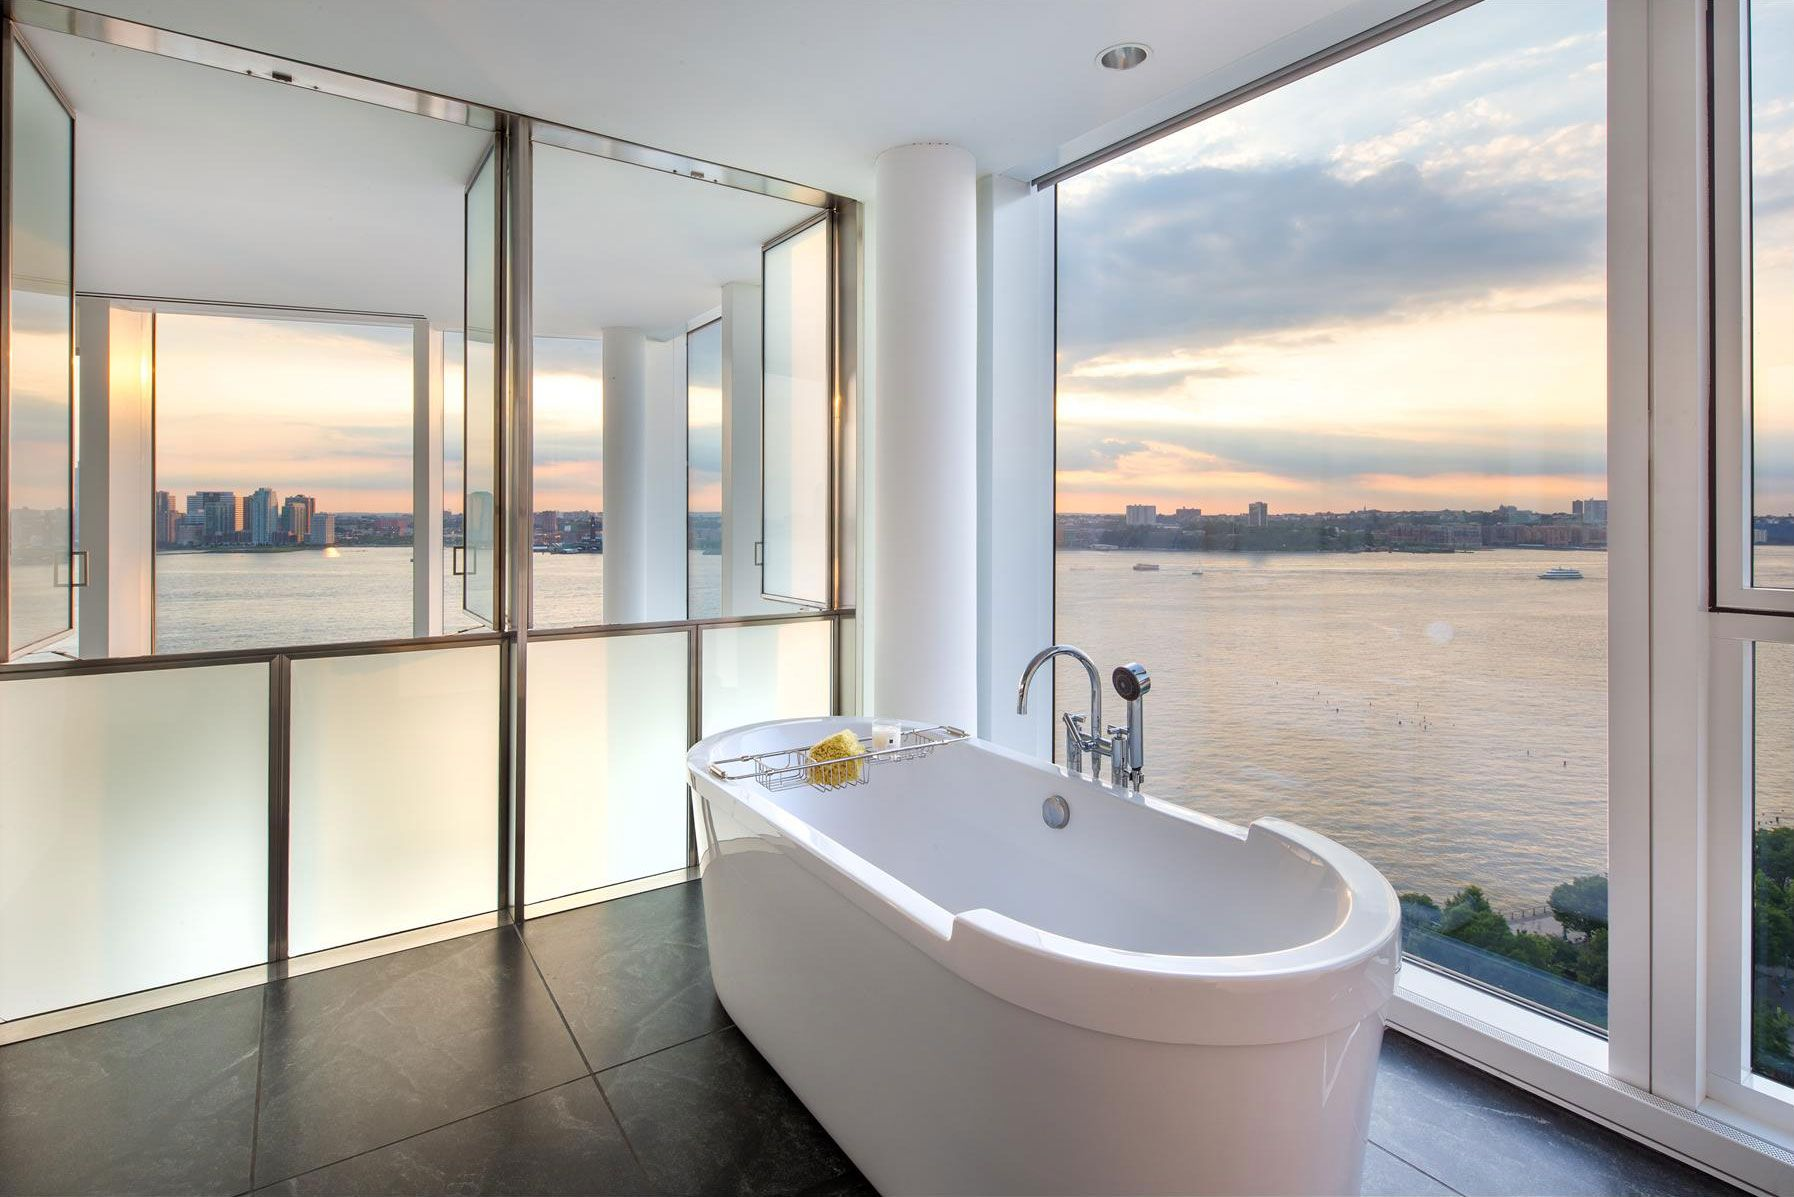 Bathroom, Bath, River Views, Apartment In Manhattan